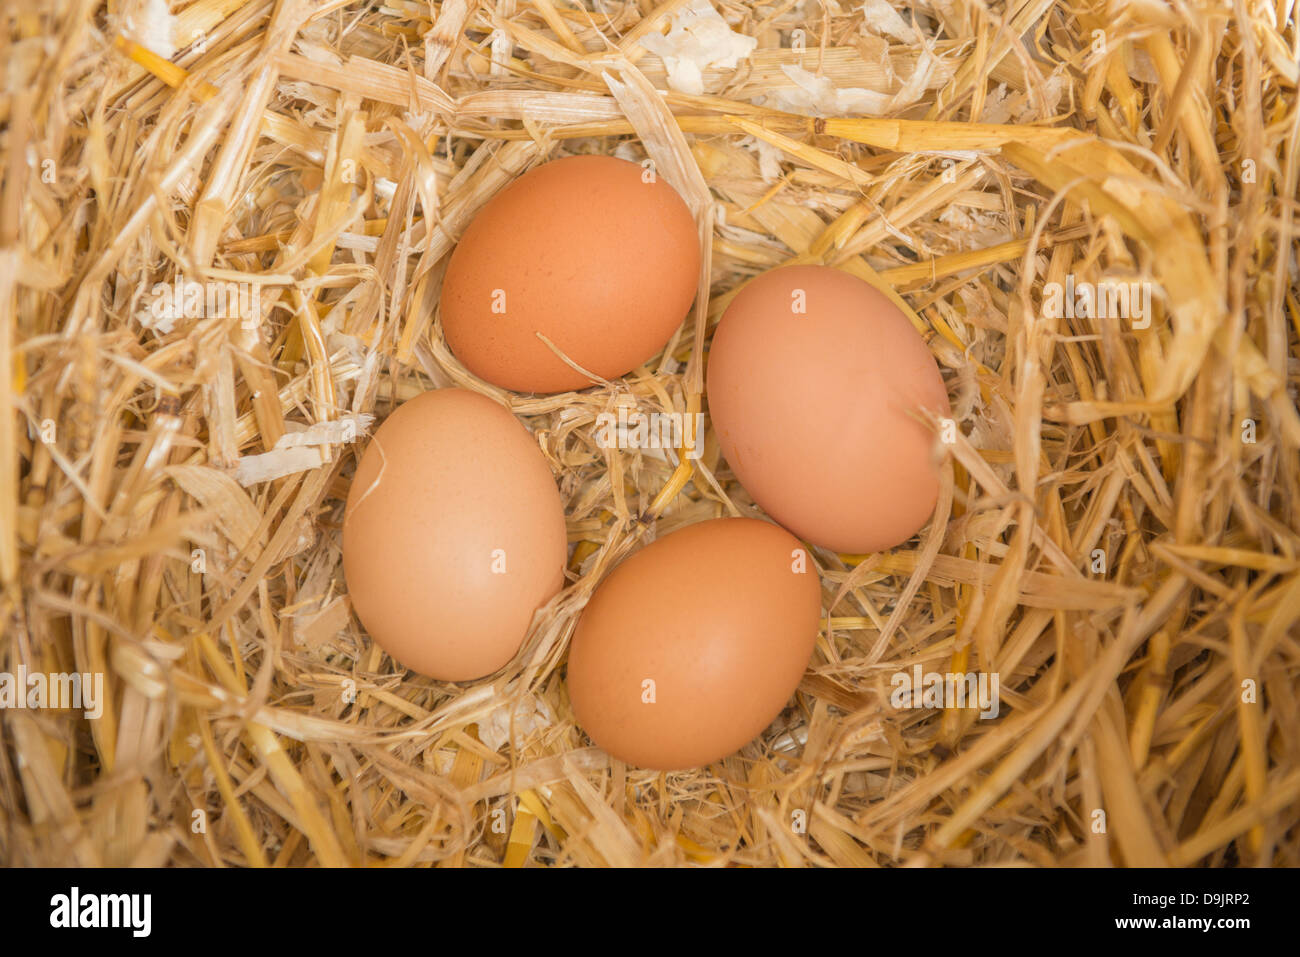 Freshly laid chicken eggs in a laying box - Stock Image